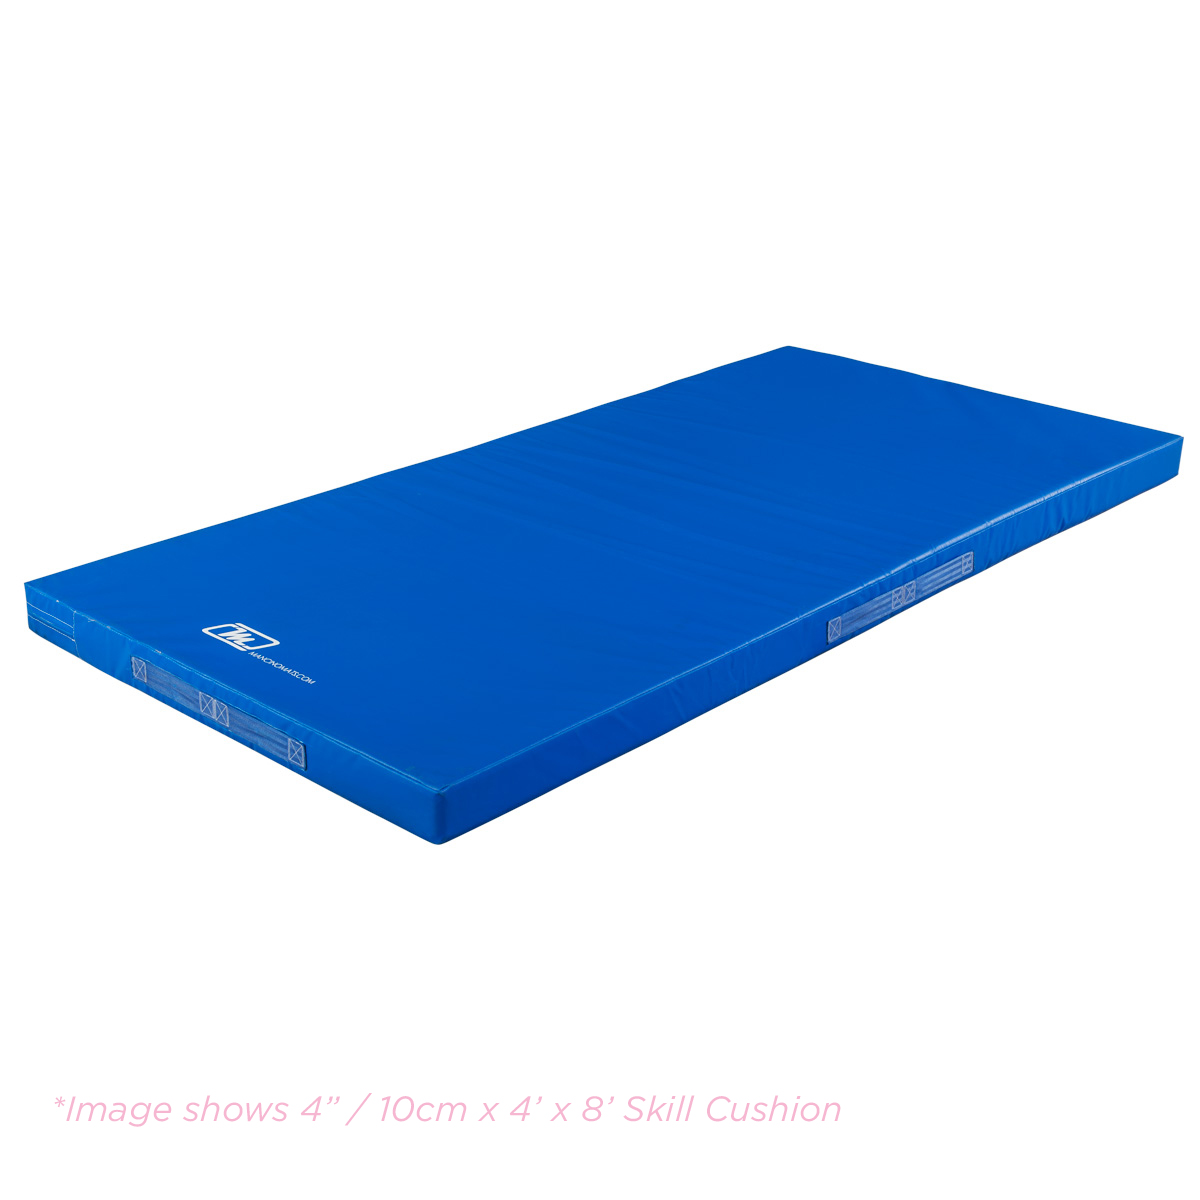 "4"" incher skill cushion landing mat in royal blue"